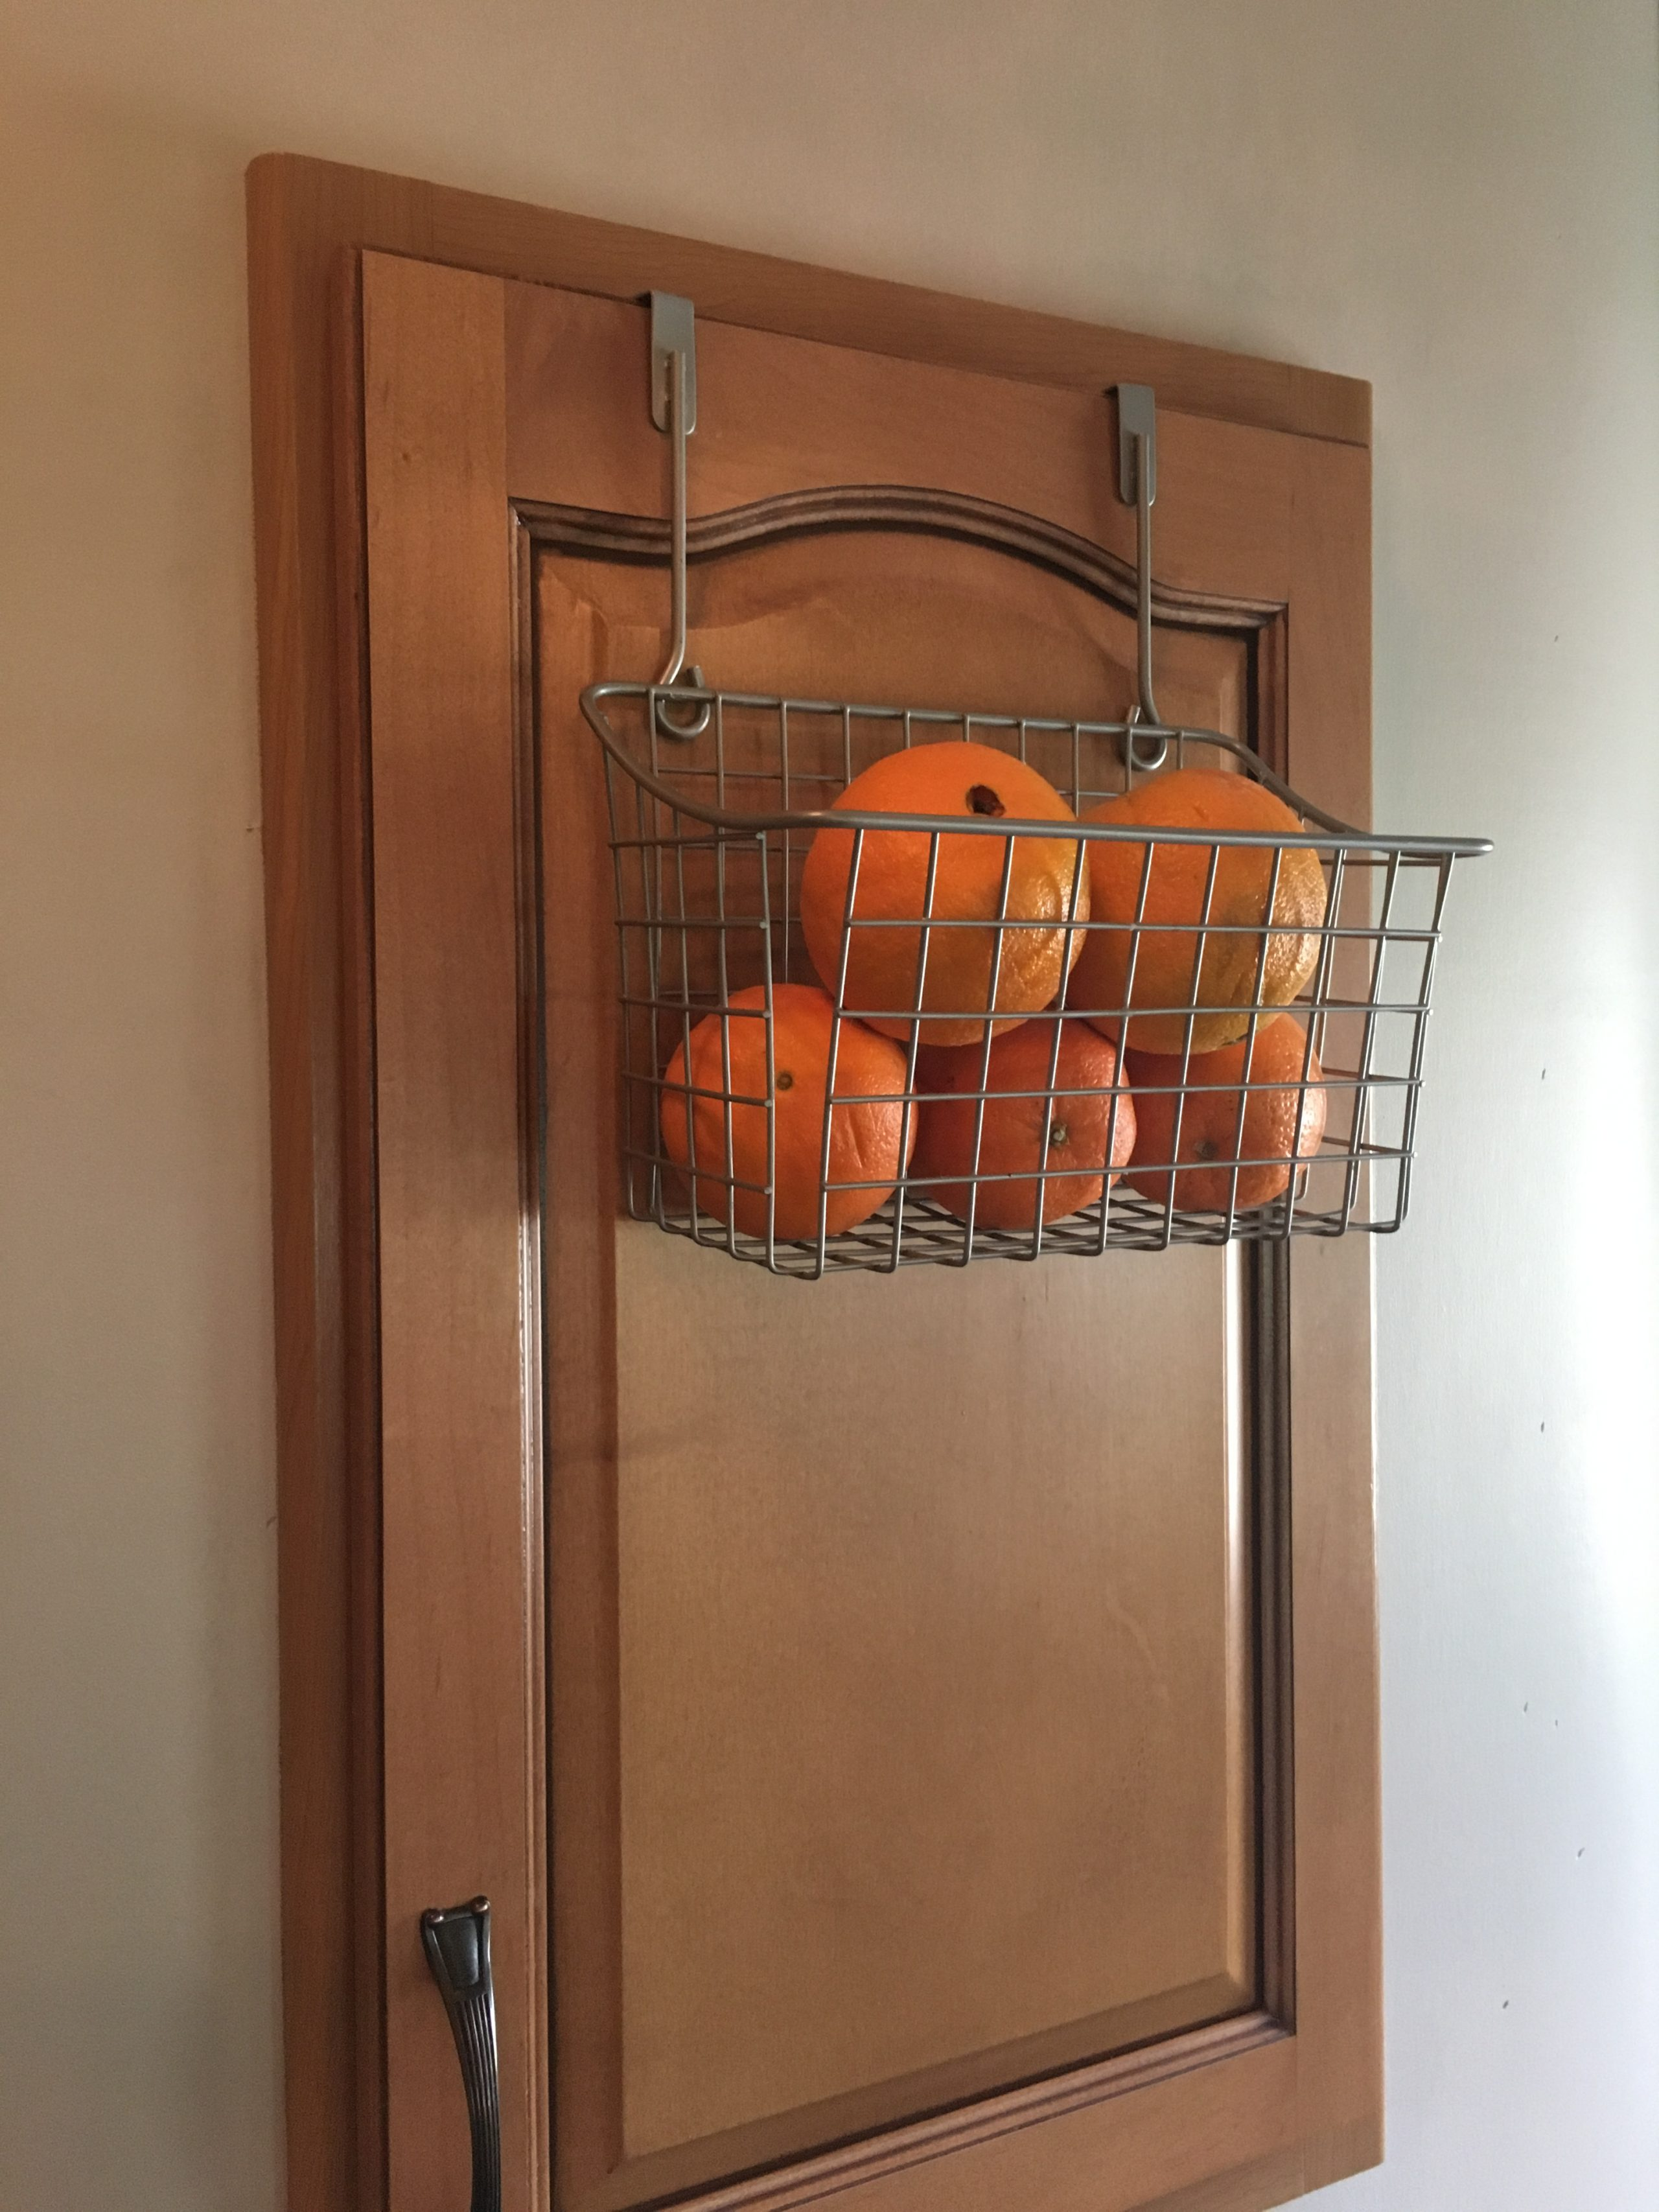 baskets hung with mug hooks for fruit / root vegetable storage | RVinspiration.com | Ideas for campers, motorhomes, and travel trailers